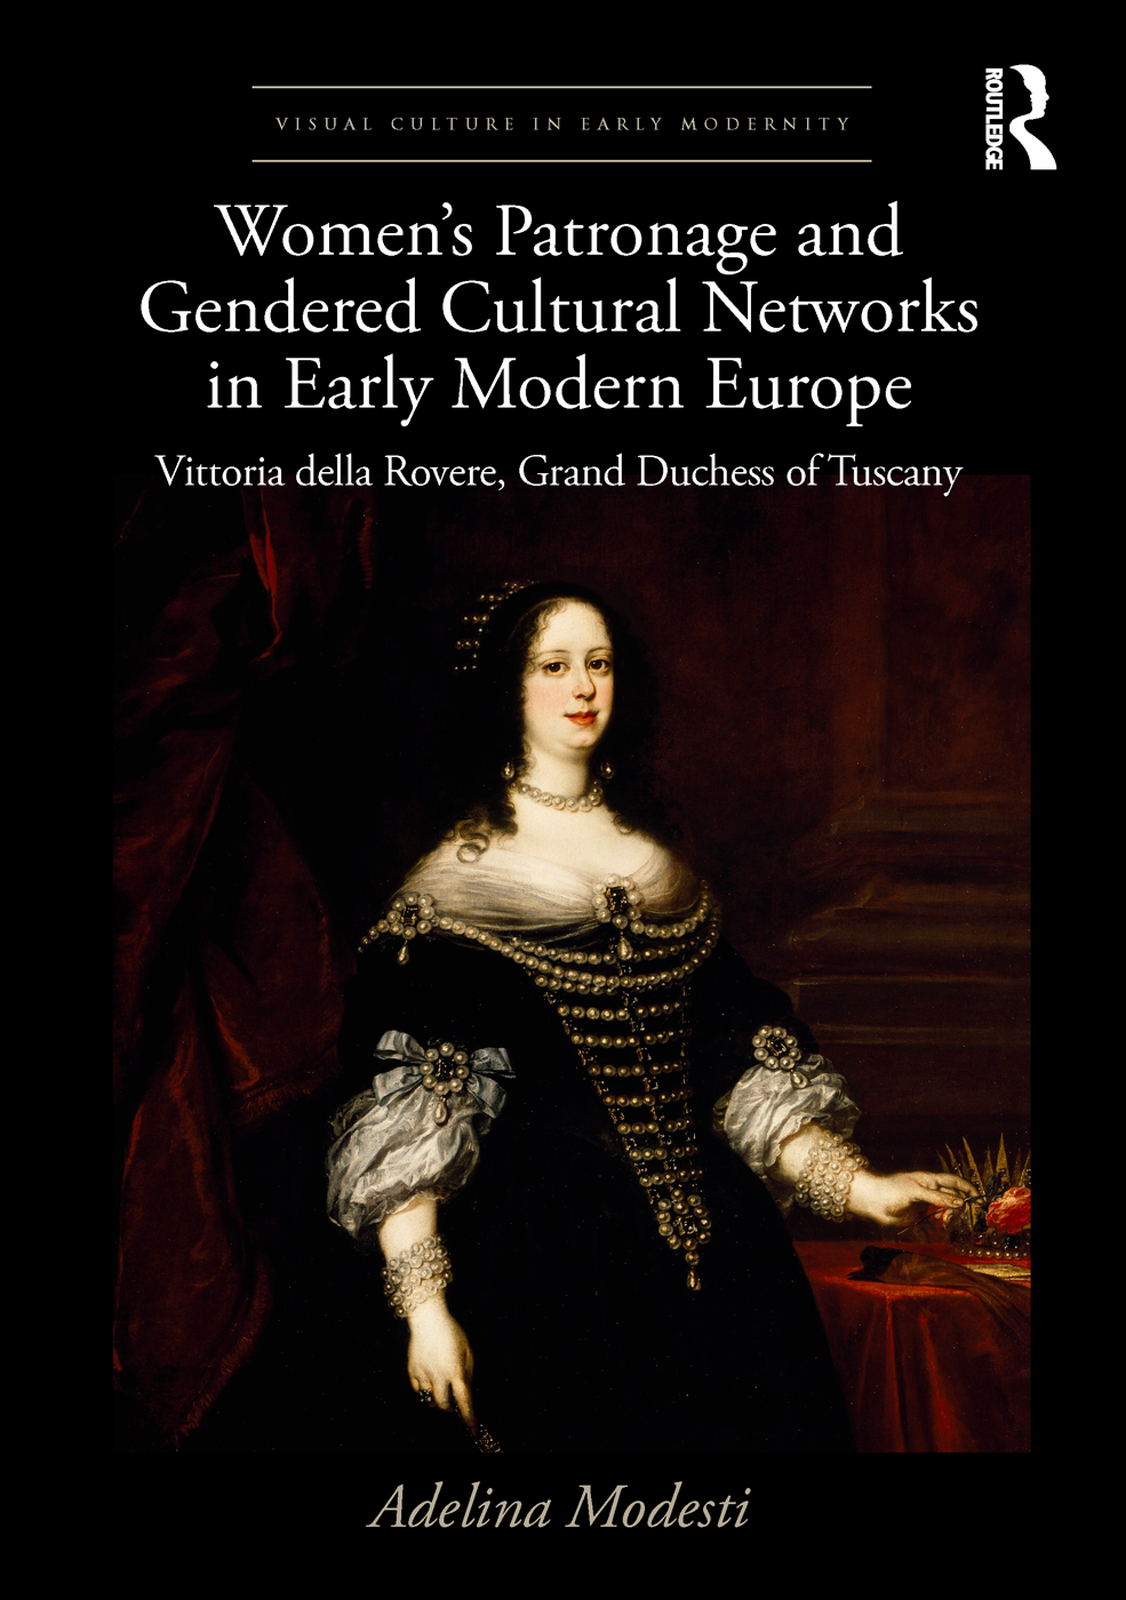 Women's Patronage and Gendered Cultural Networks in Early Modern Europe